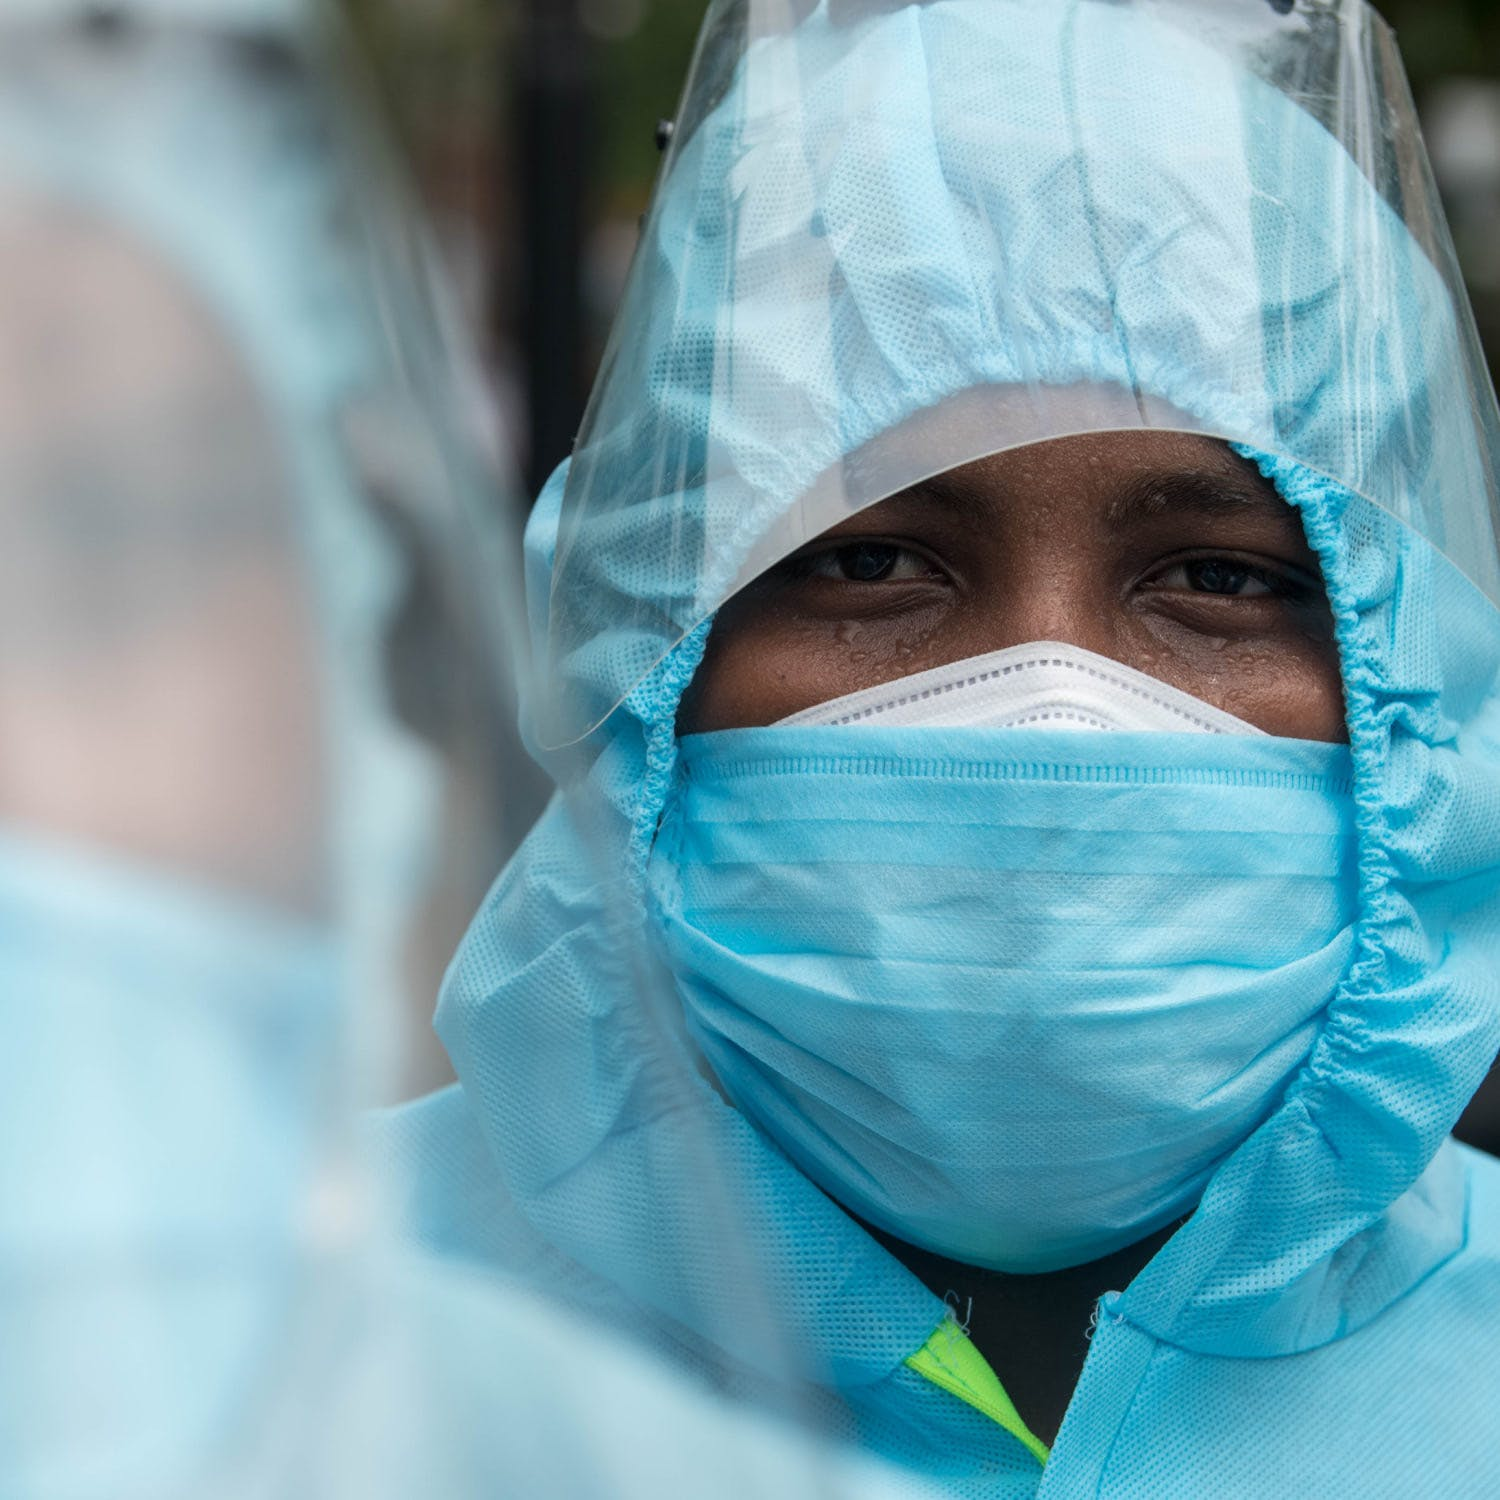 Report From India: What the COVID-19 Pandemic Is Like Right Now